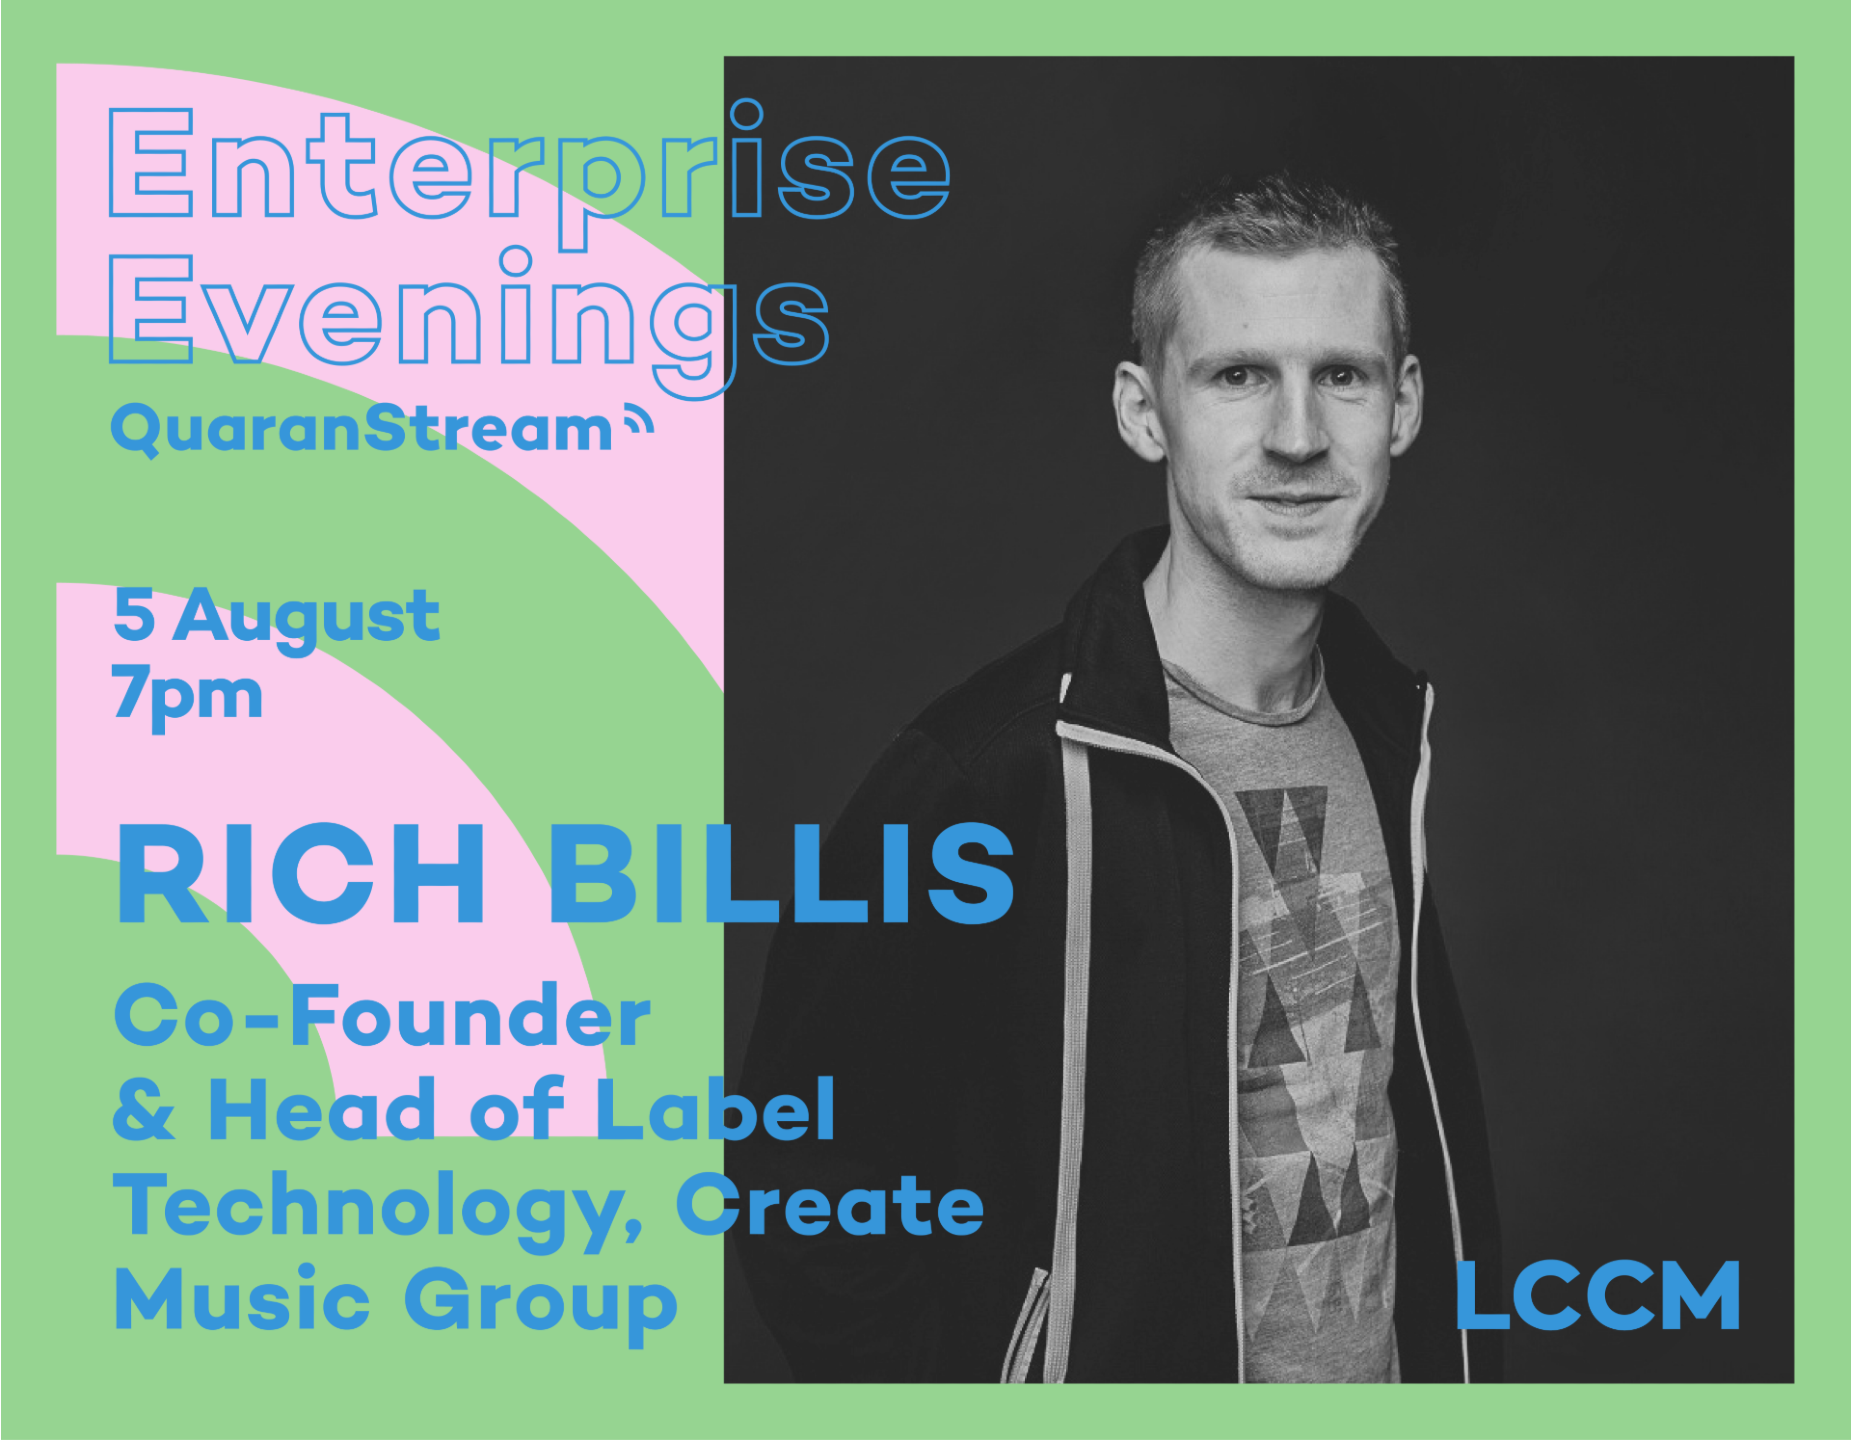 LCCM Enterprise Evenings: Rich Billis